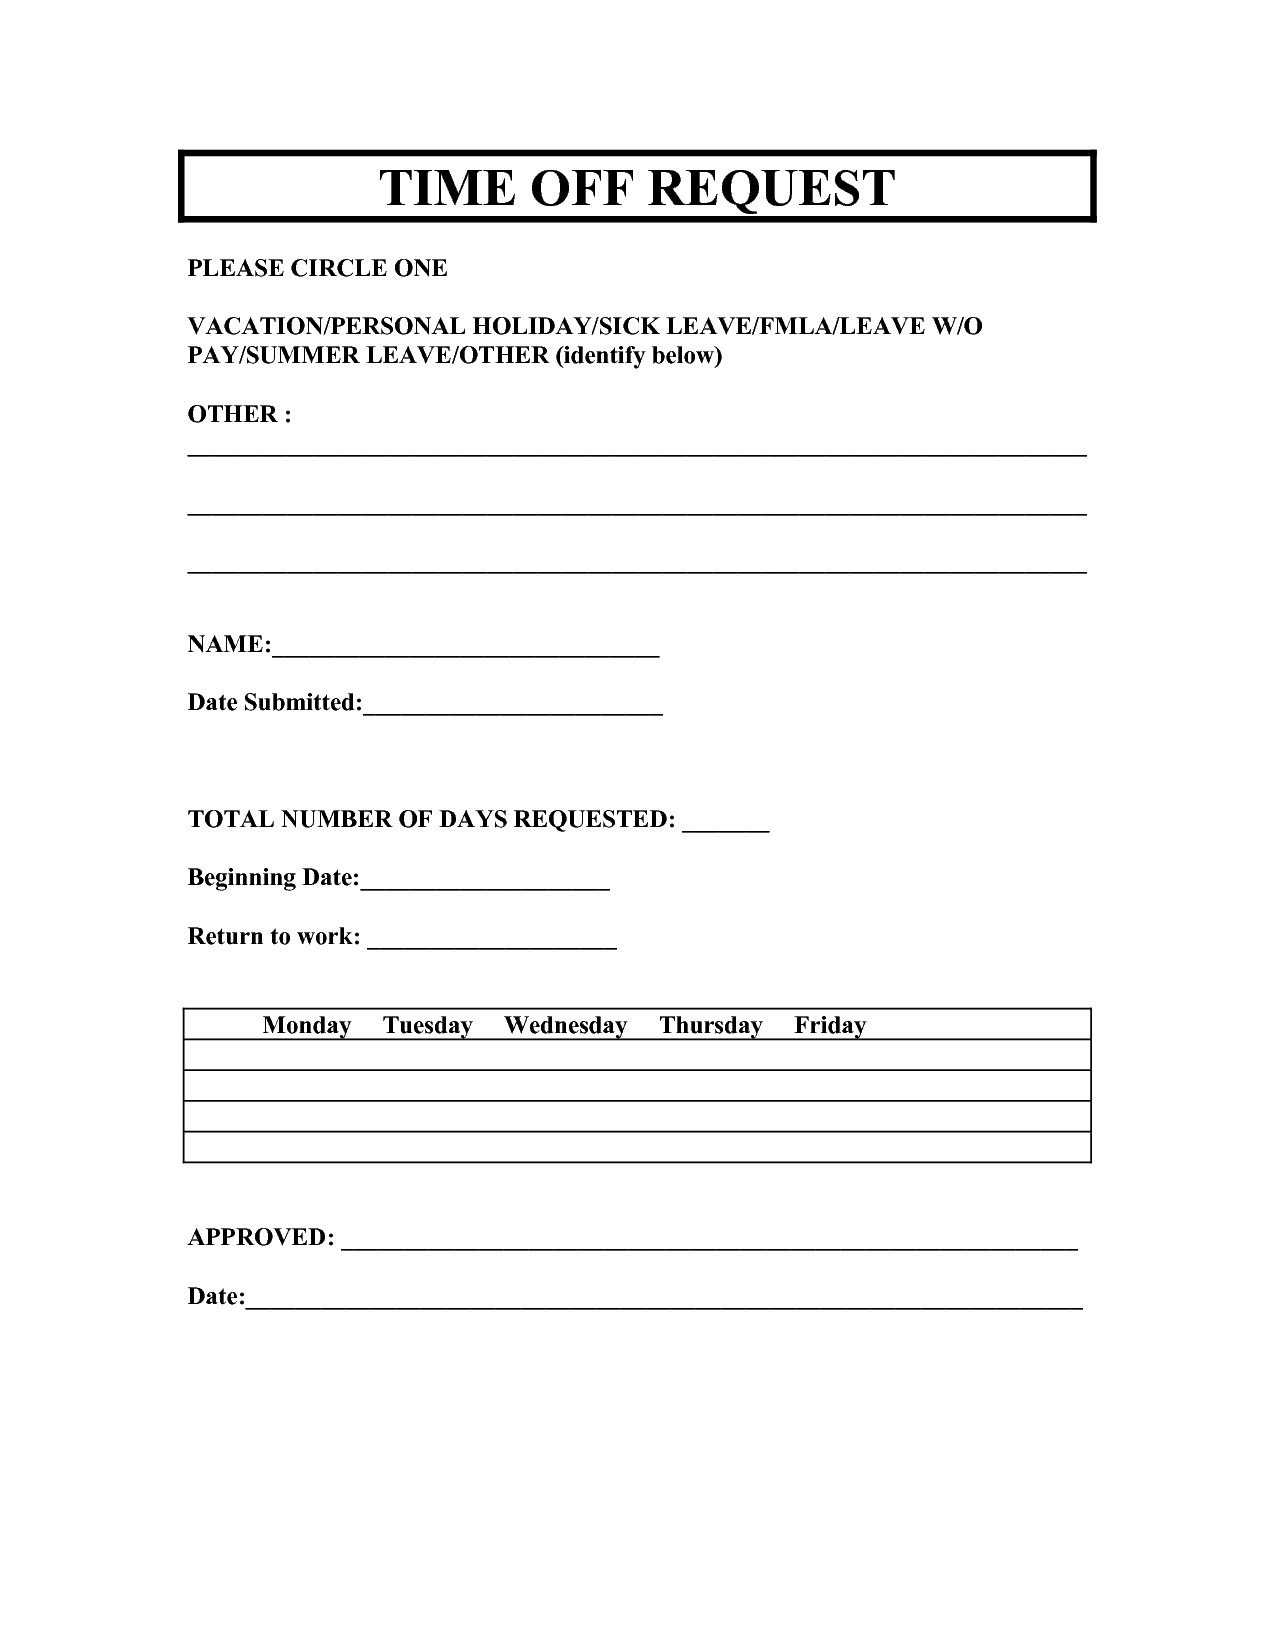 Employee vacation request forms charlotte clergy coalition vacation form template kleoachfix maxwellsz